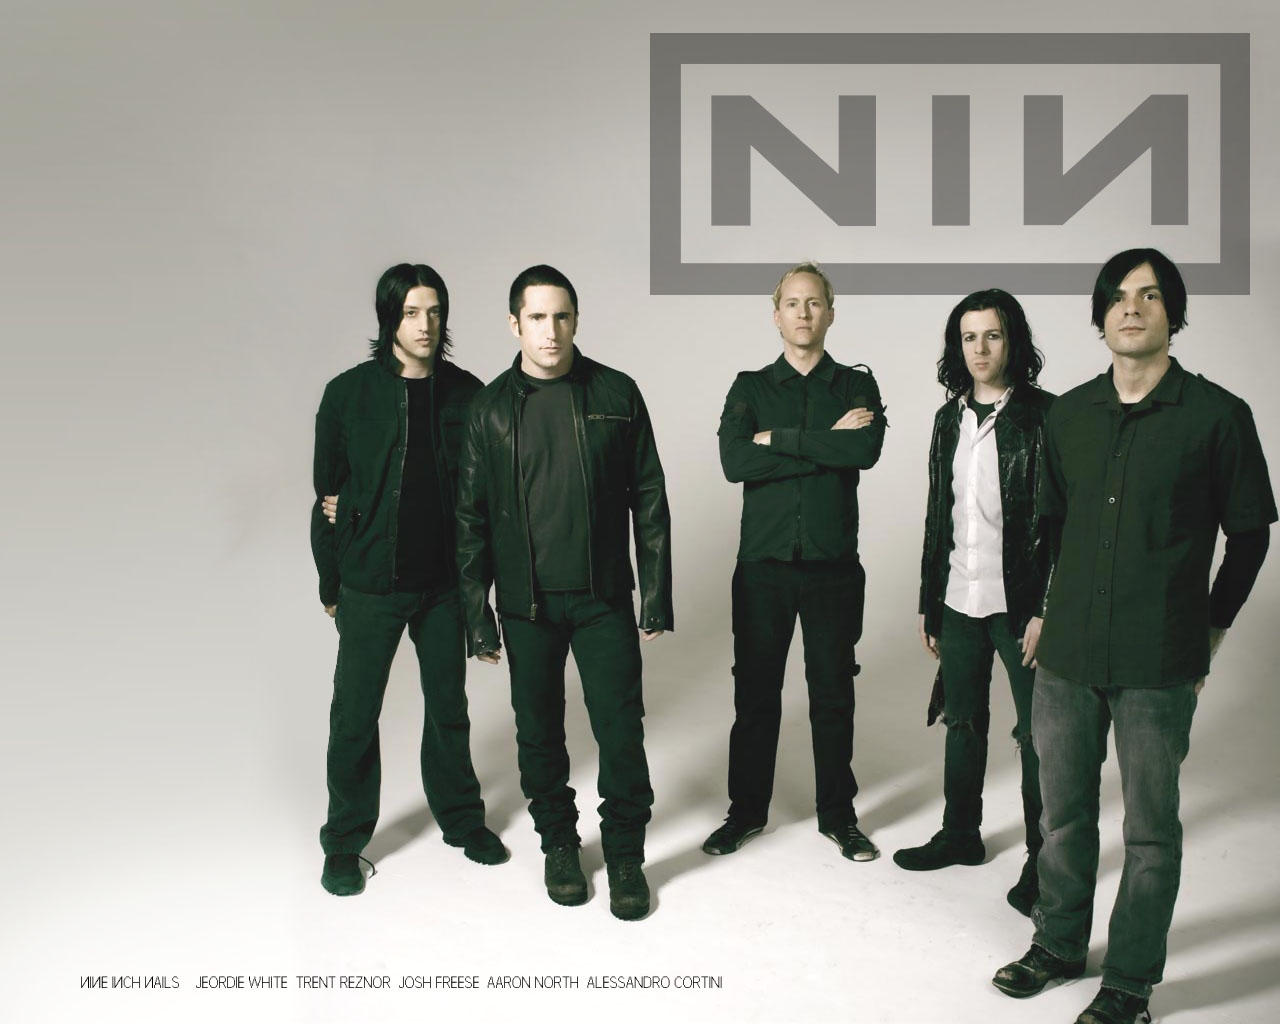 Nine Inch Nails - Band Photo 2 by sovetskitch on DeviantArt